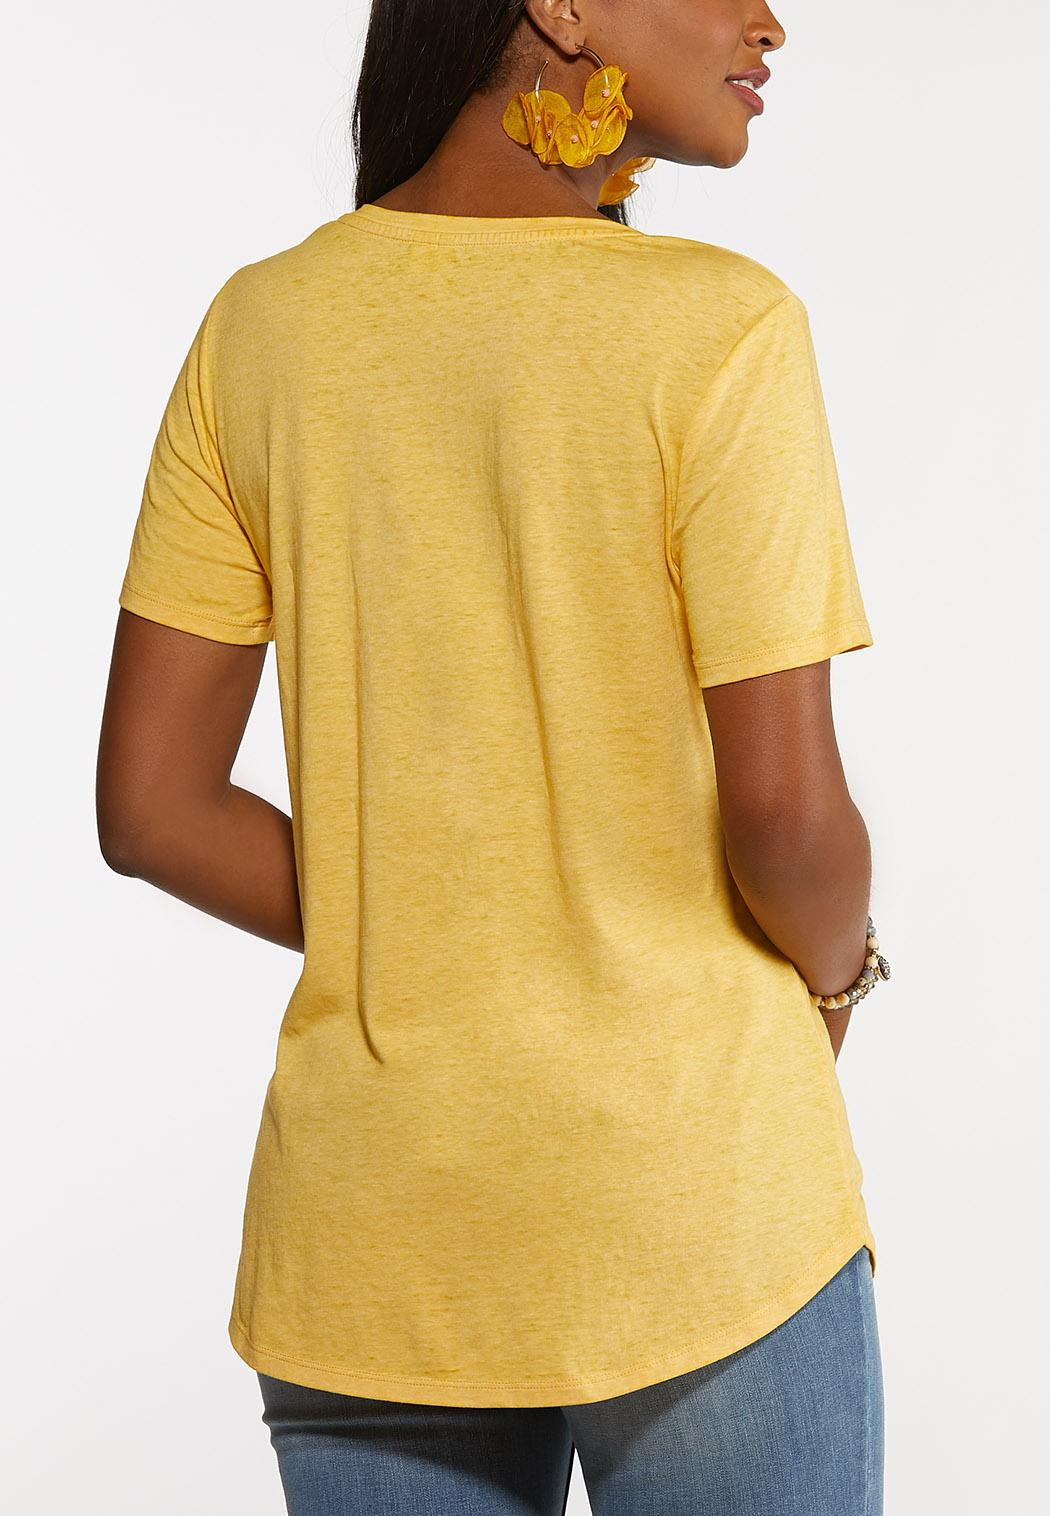 Go With The Flow Tee (Item #44155966)